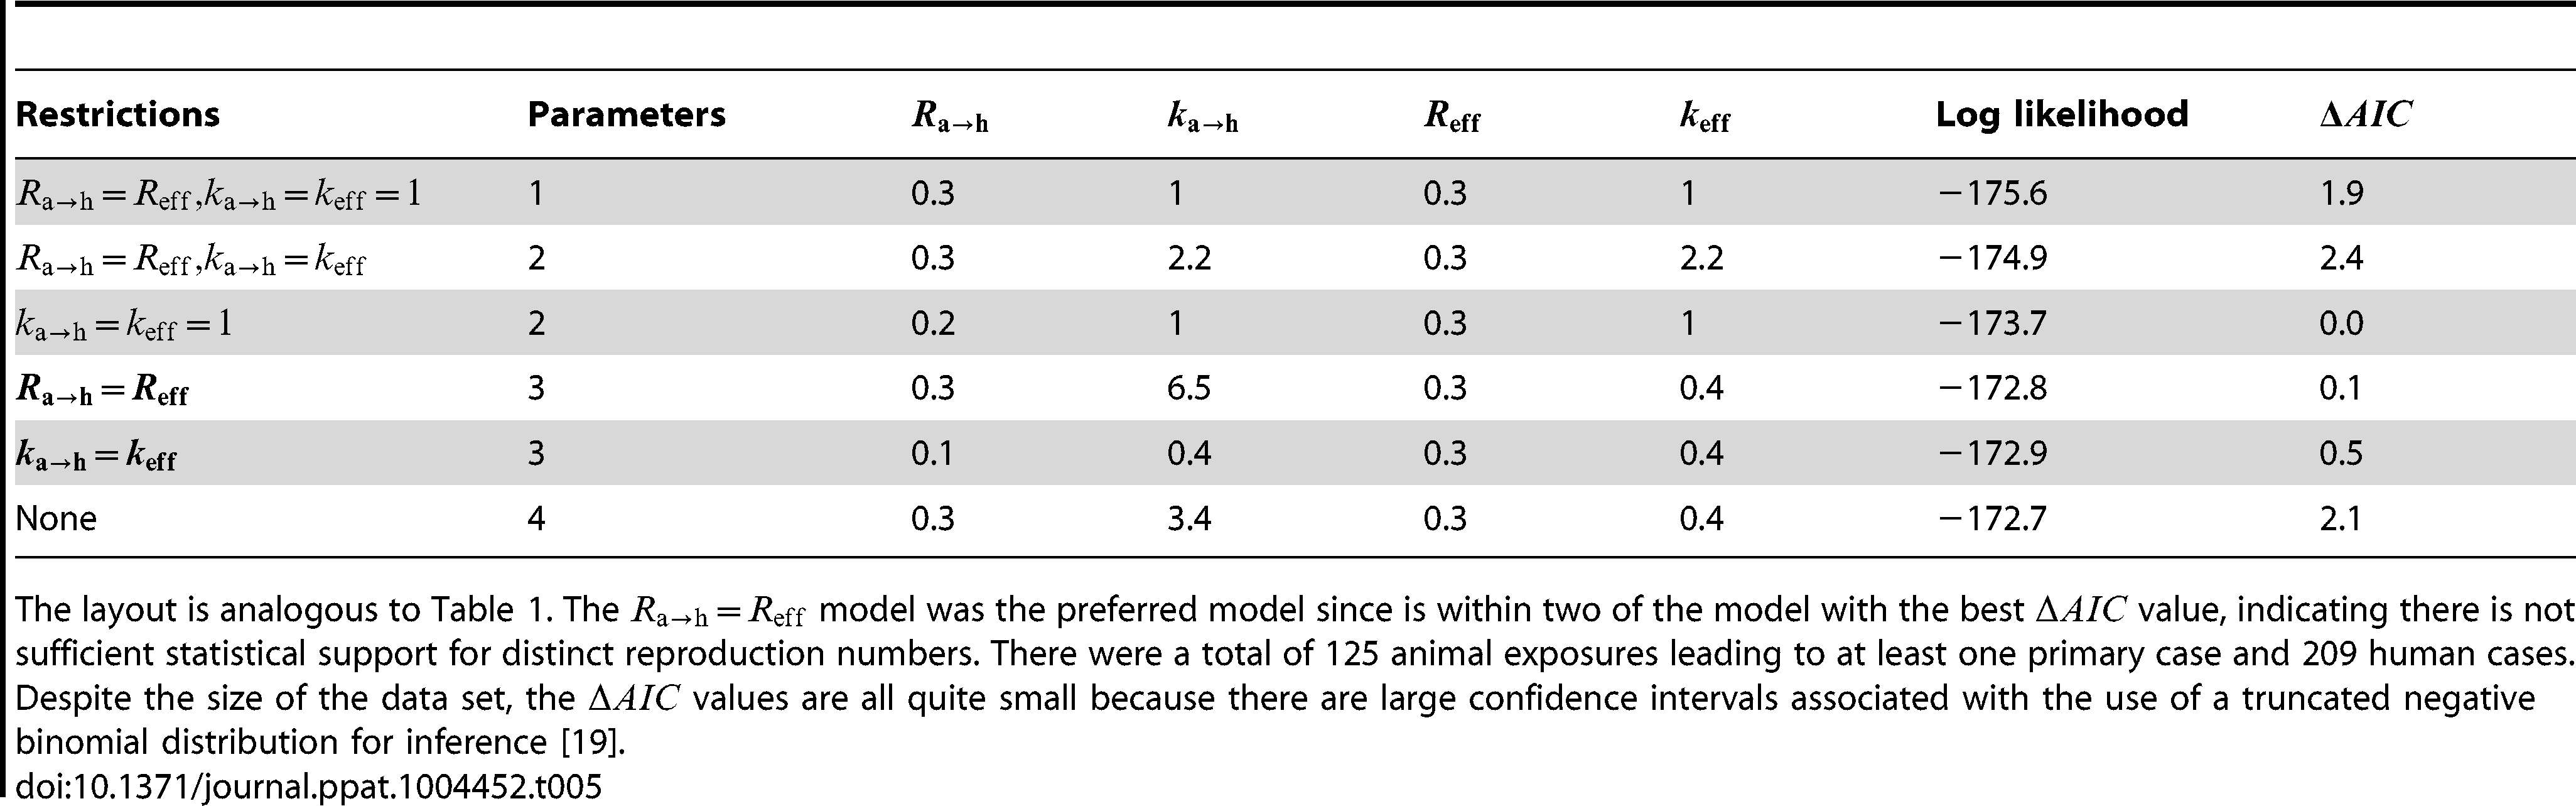 Inference results for comparing animal-to-human and human-to-human transmissibility for human monkeypox in the Democratic Republic of Congo, 1981–1984.